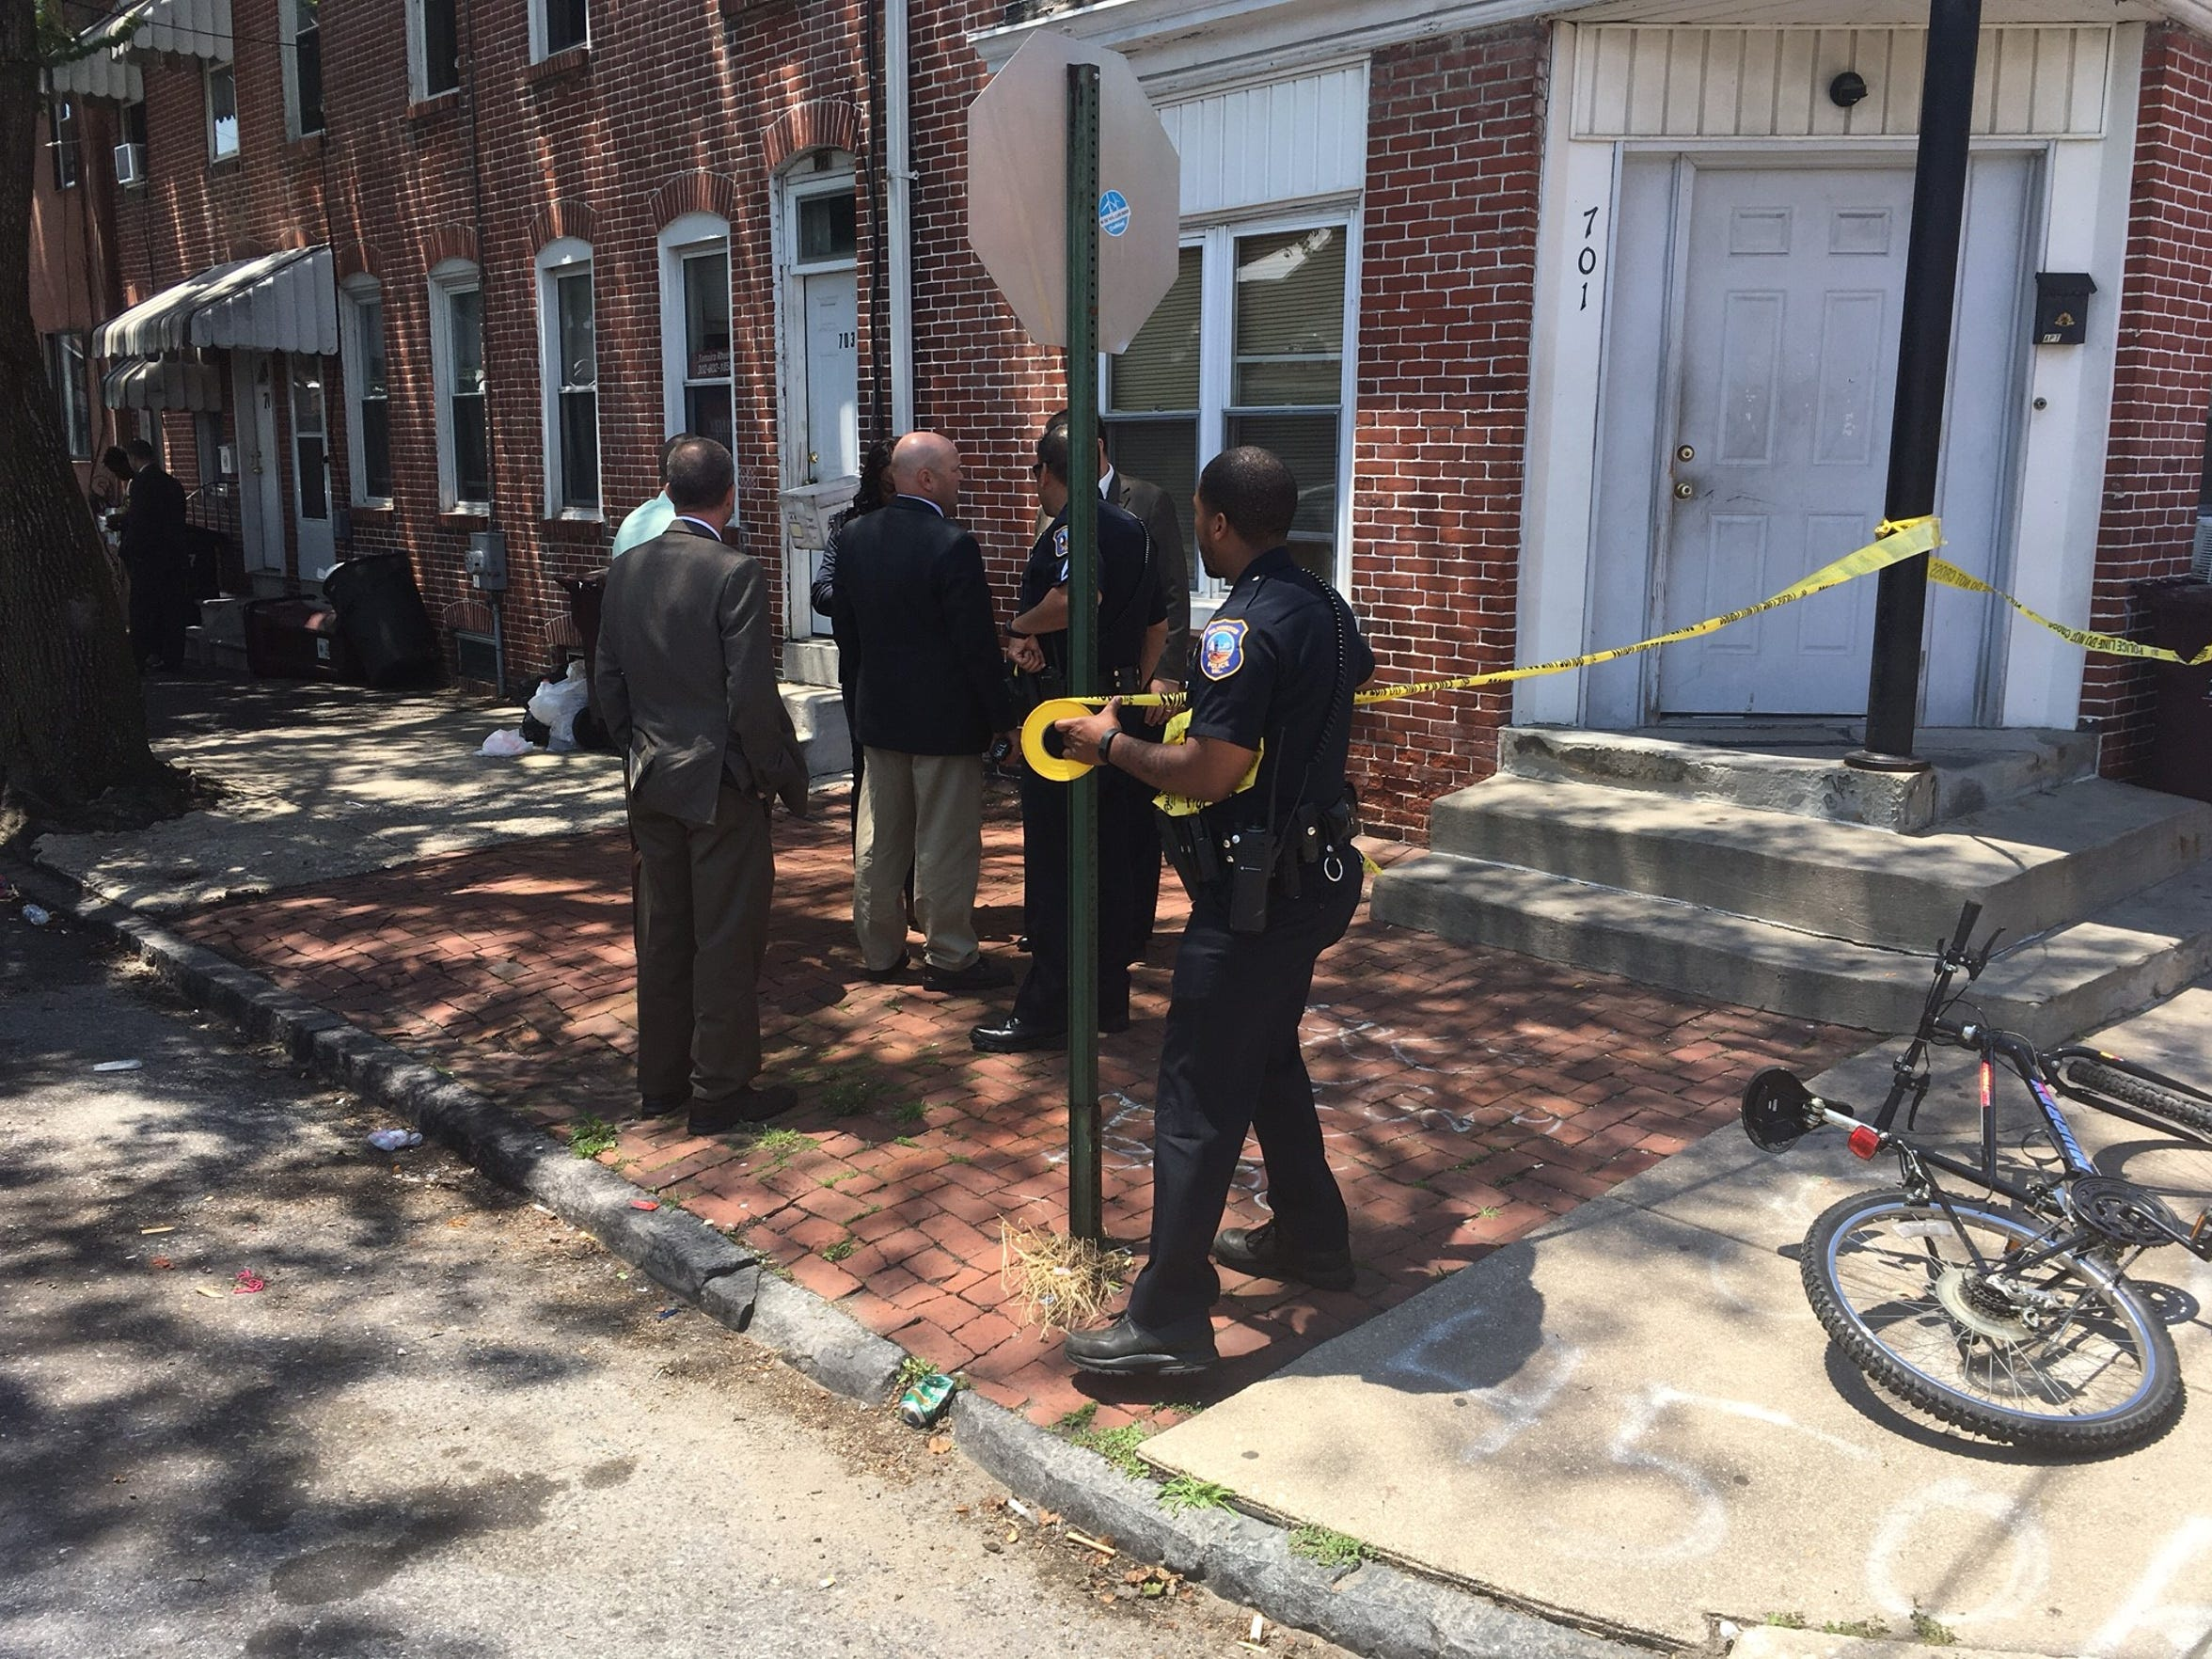 Wilmington police are investigating a shooting that left a teen injured in the 700 block of S. Van Buren St. in Wilmington on Thursday, June 2, 2016.